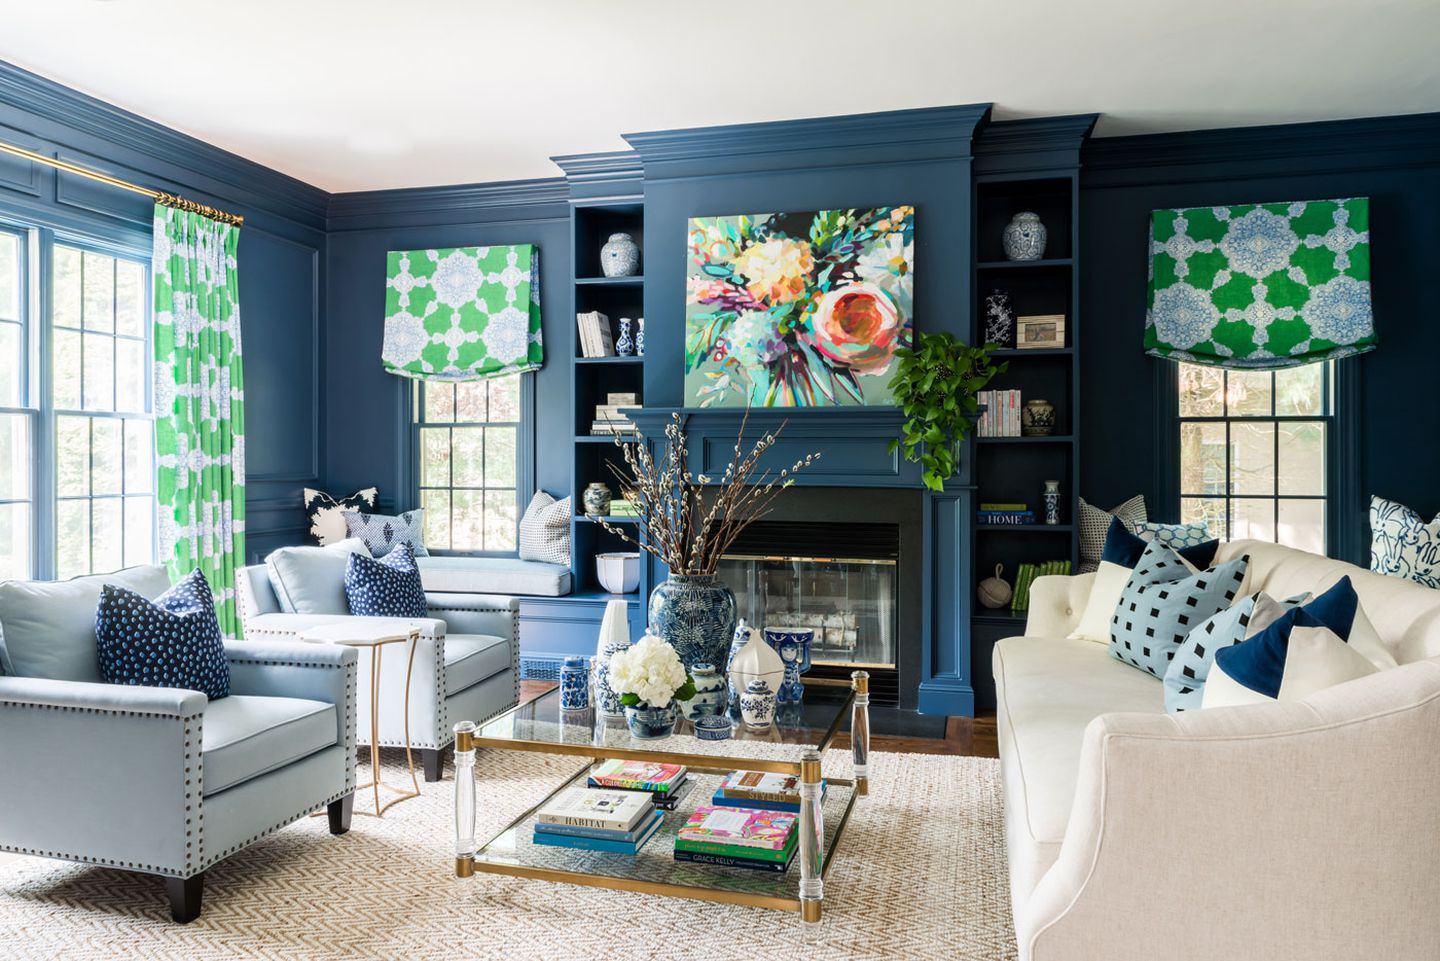 How A Nondescript Home Was Transformed Into A Picturesque